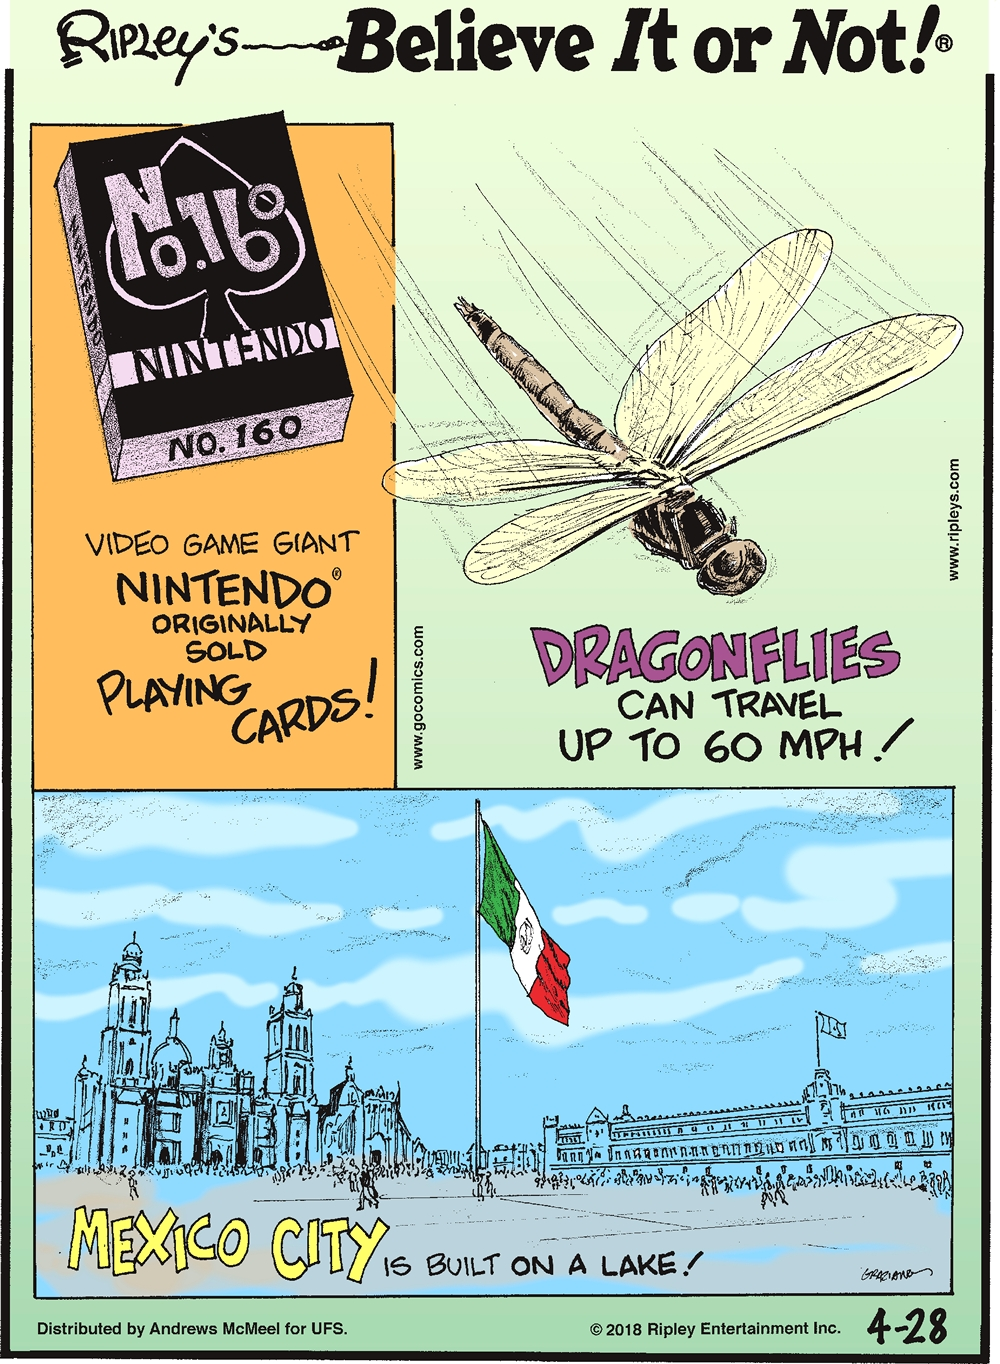 Video game giant Nintendo originally sold playing cards!-------------------- Dragonflies can travel up to 60 mph!-------------------- Mexico City is built on a lake!